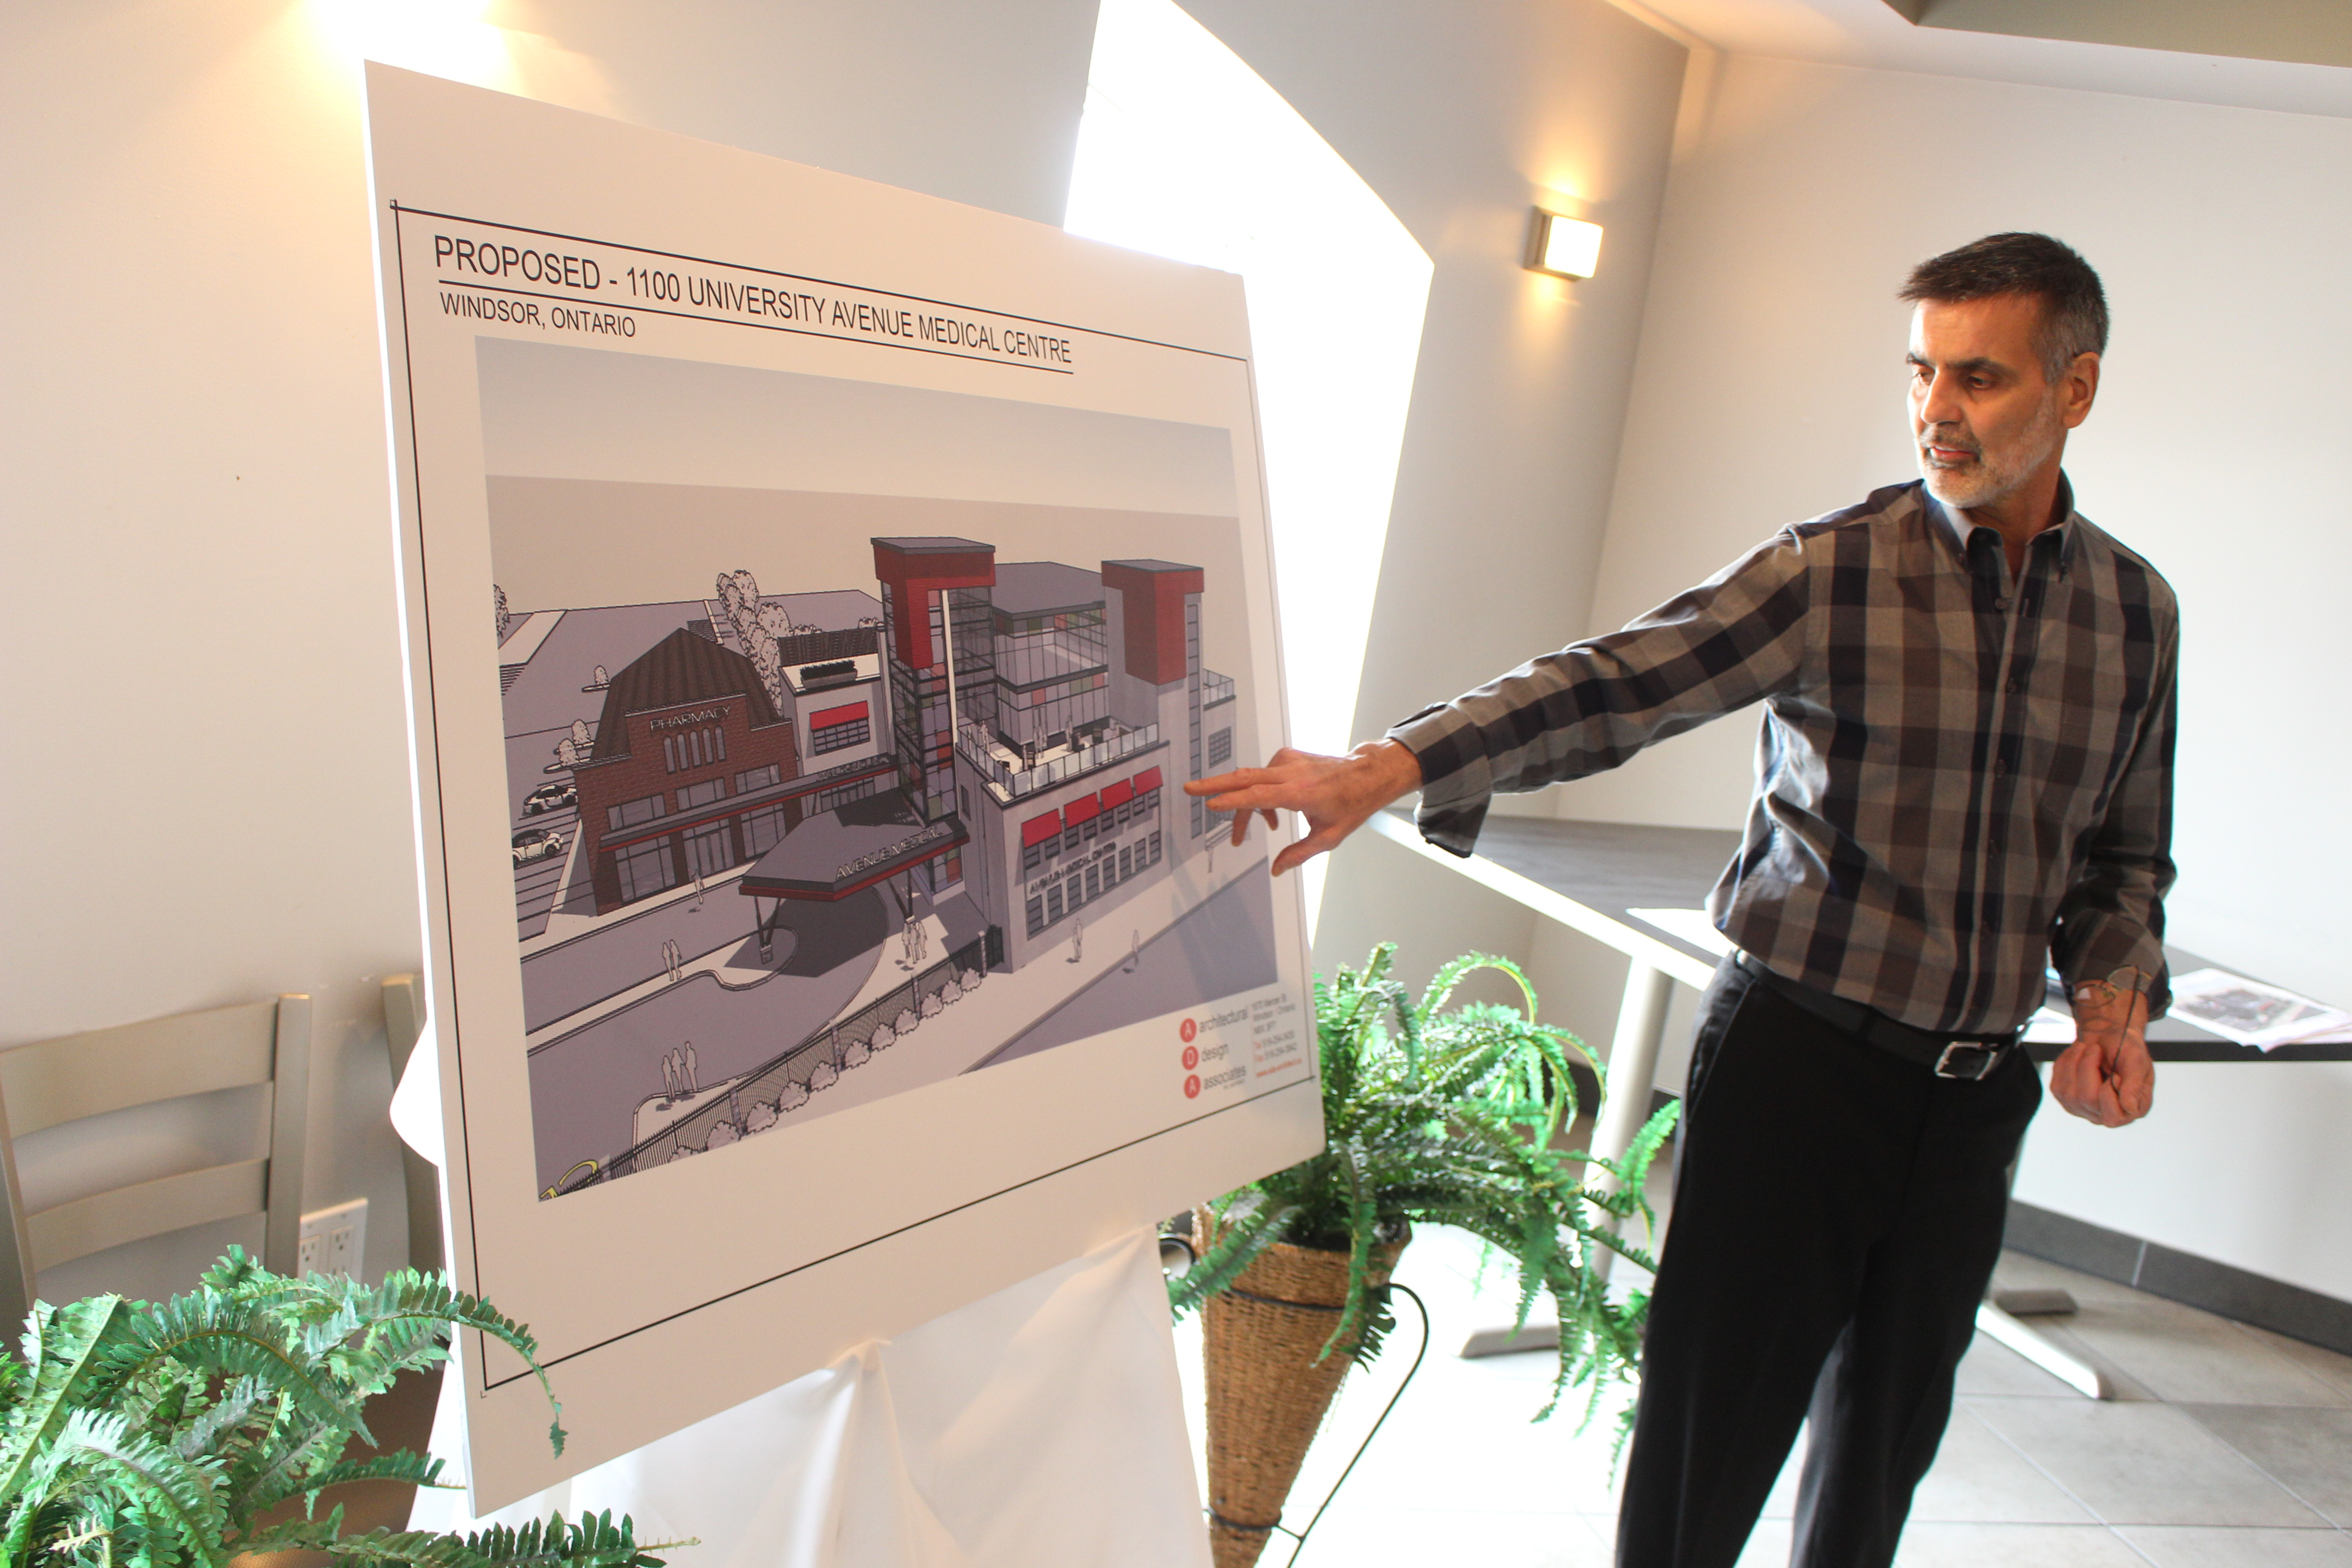 Site owner Van Niforos reveals plans to create a new medical centre at 1100 University Ave. W, July 14, 2015. (Photo by Jason Viau)